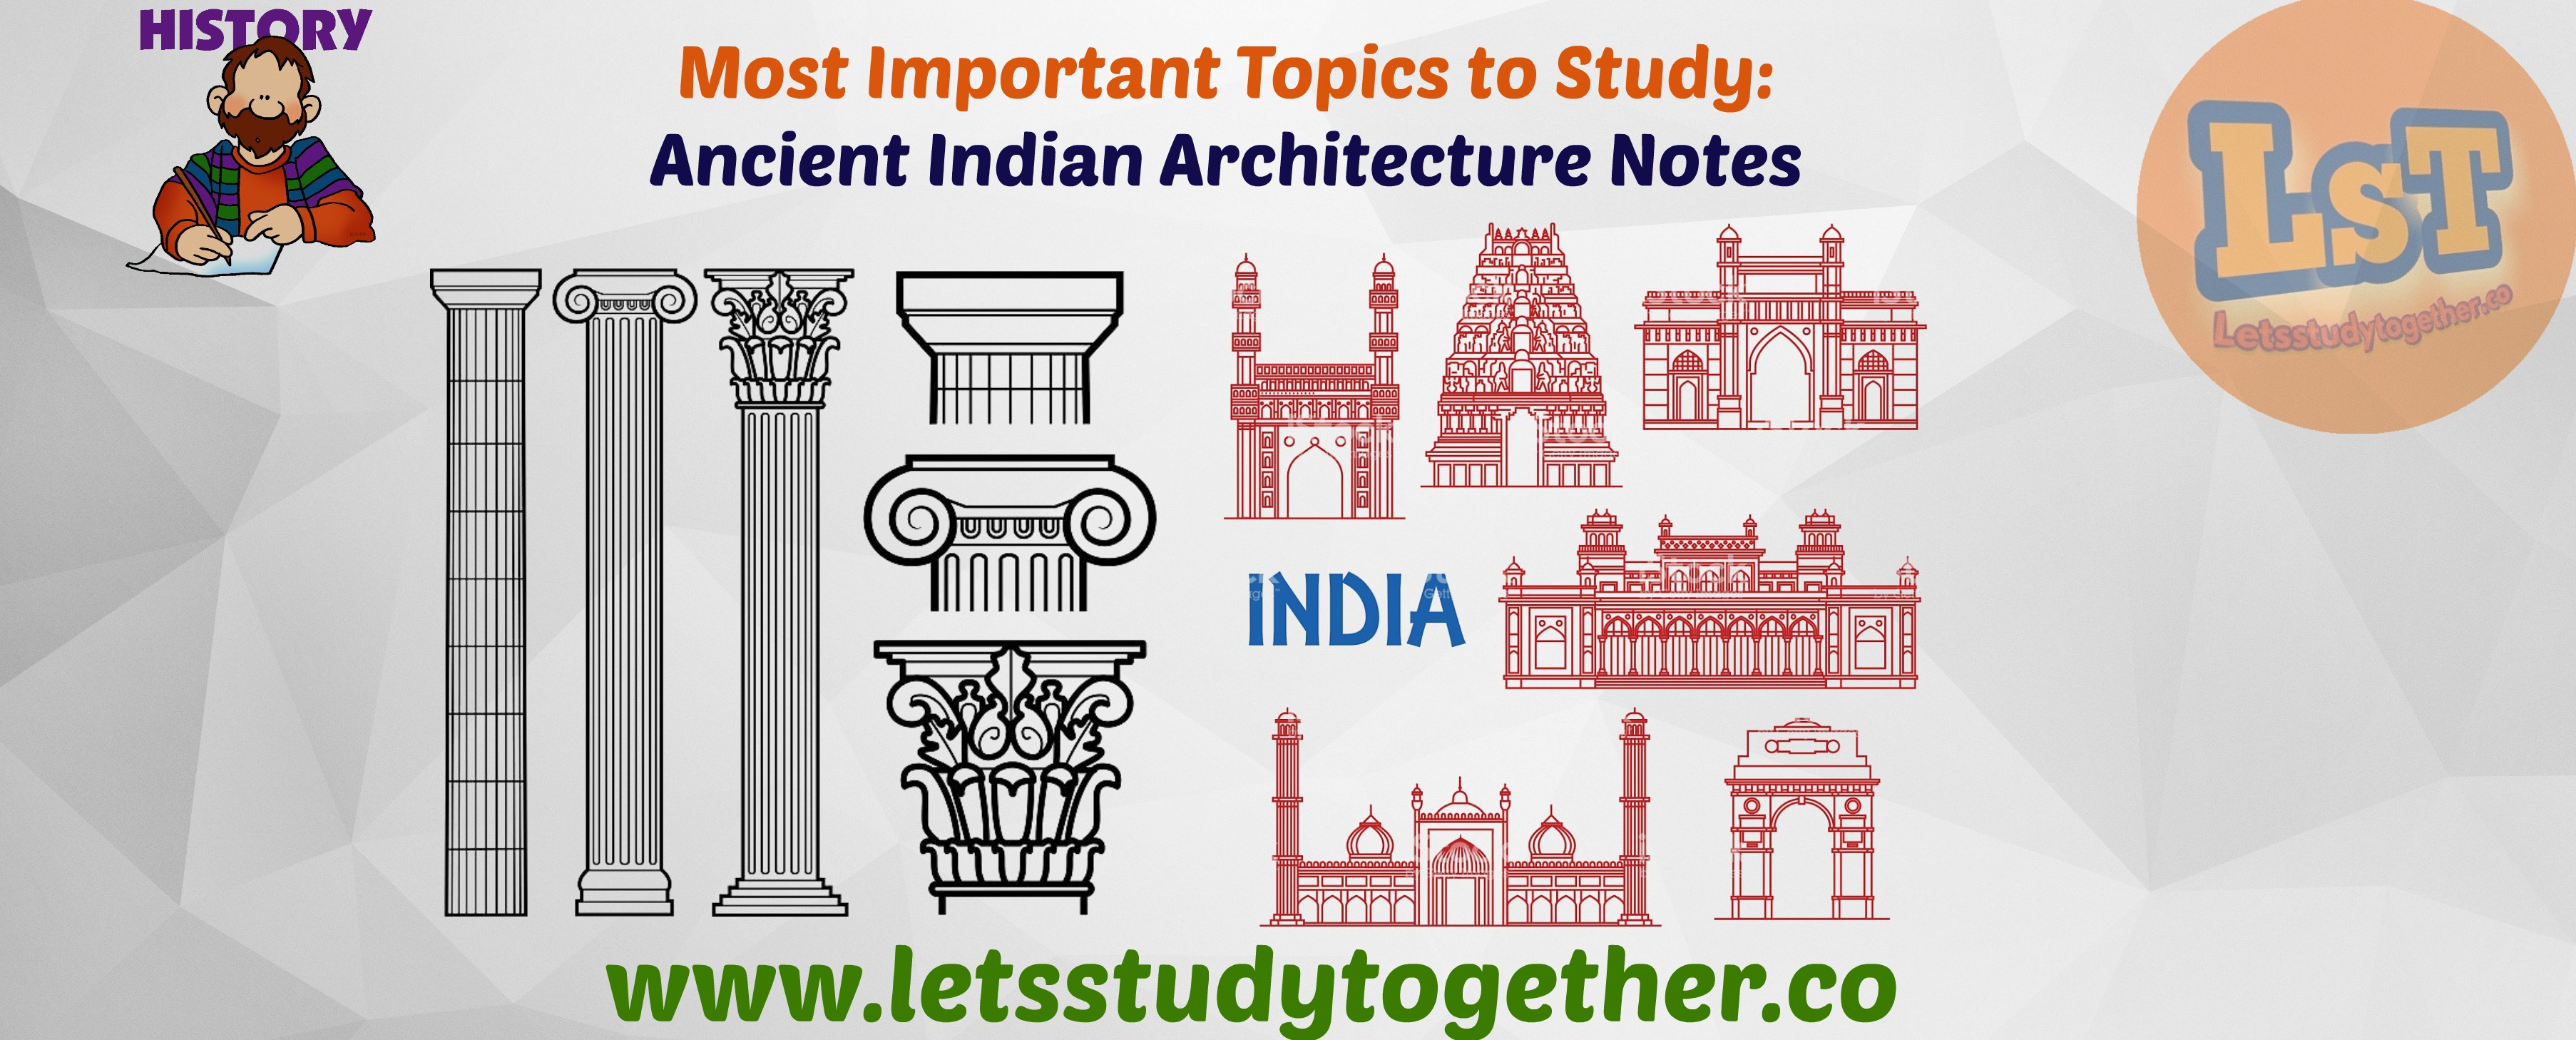 Most Important Topics to Study: Ancient Indian Architecture Notes